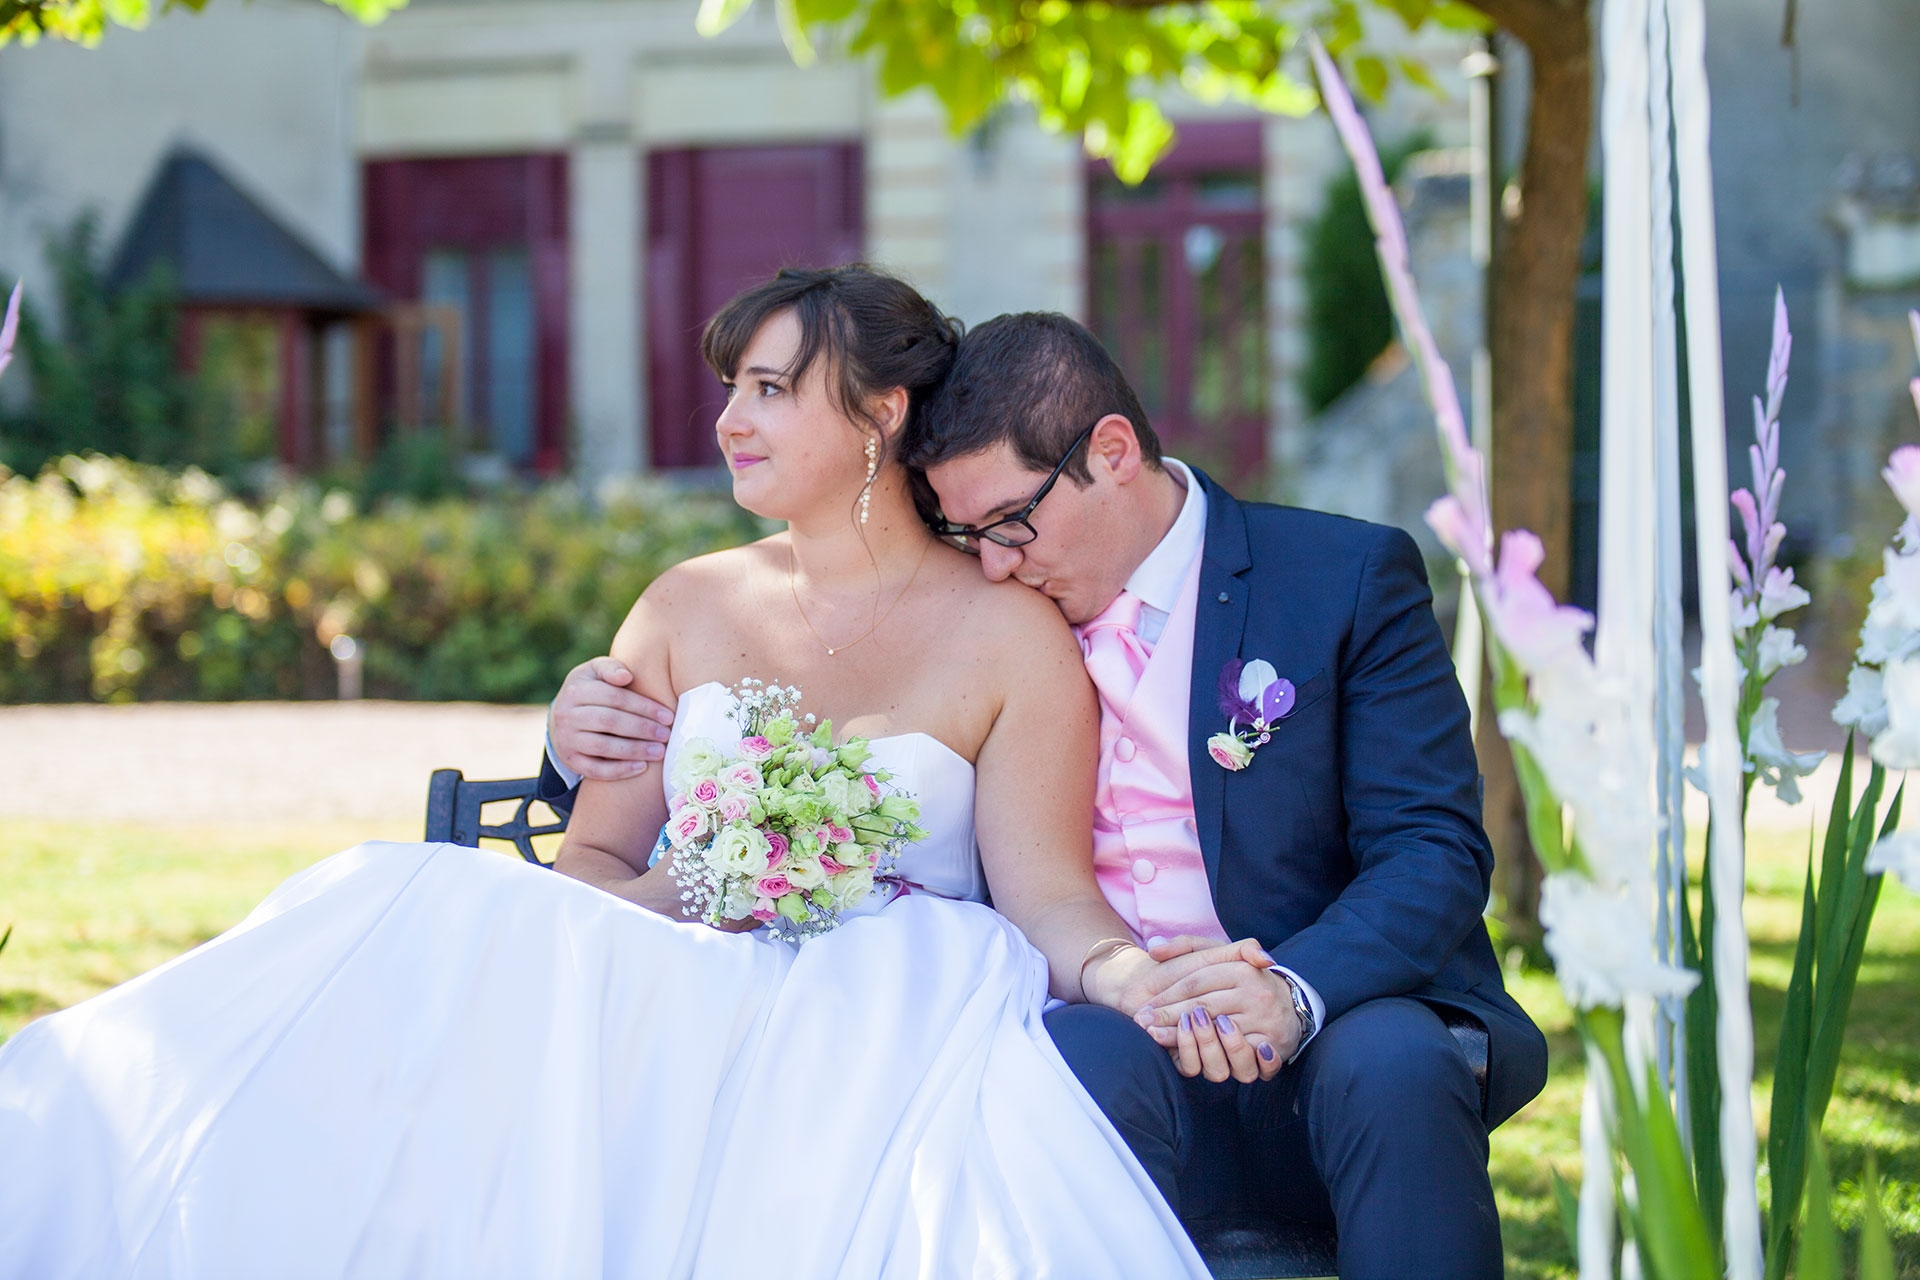 particuliers-evenements-mariages-oui-france&philippe-45